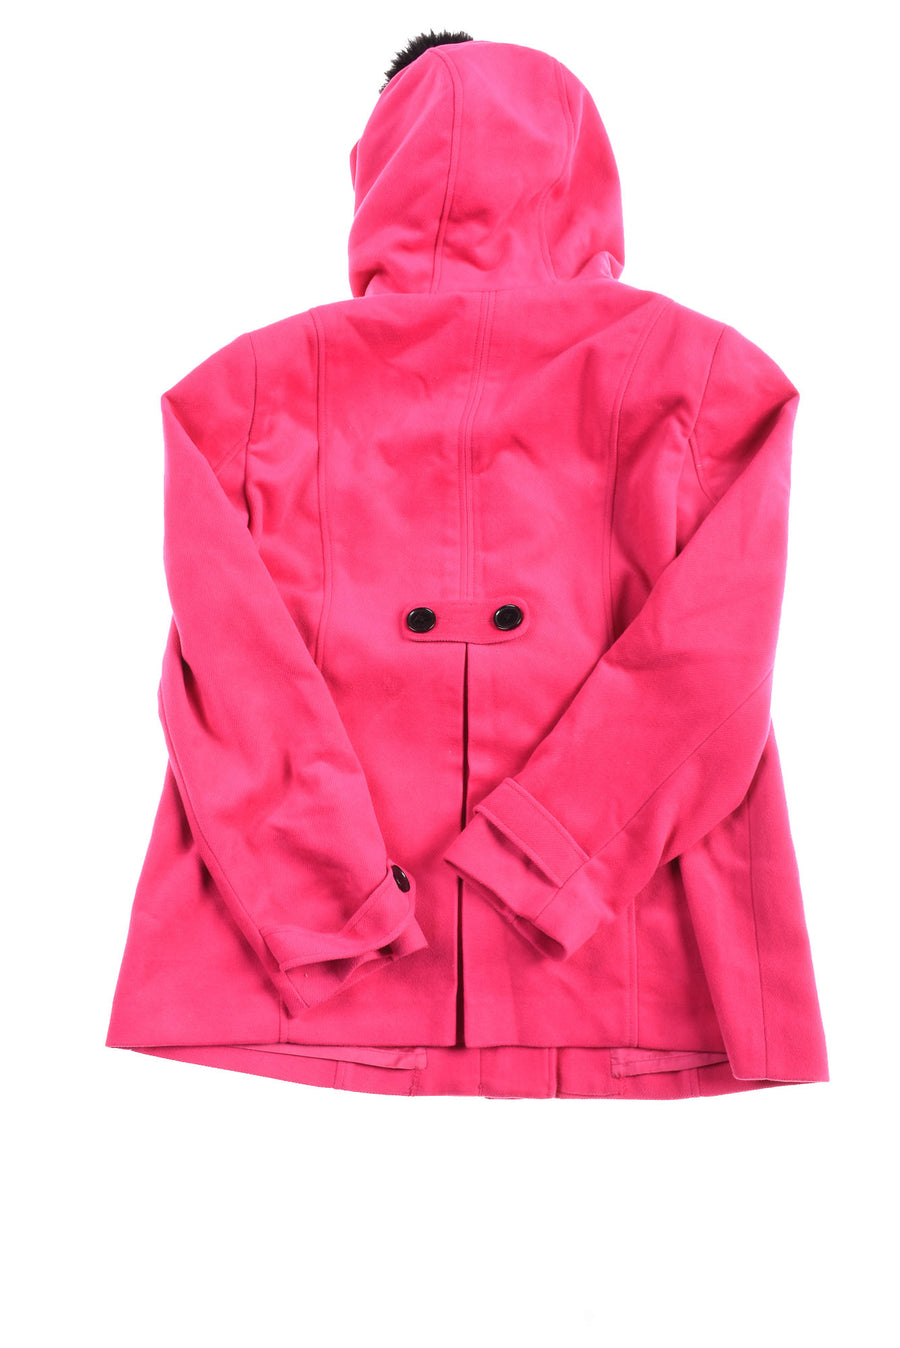 USED Anne Klein Women's Coat X-Large Pink